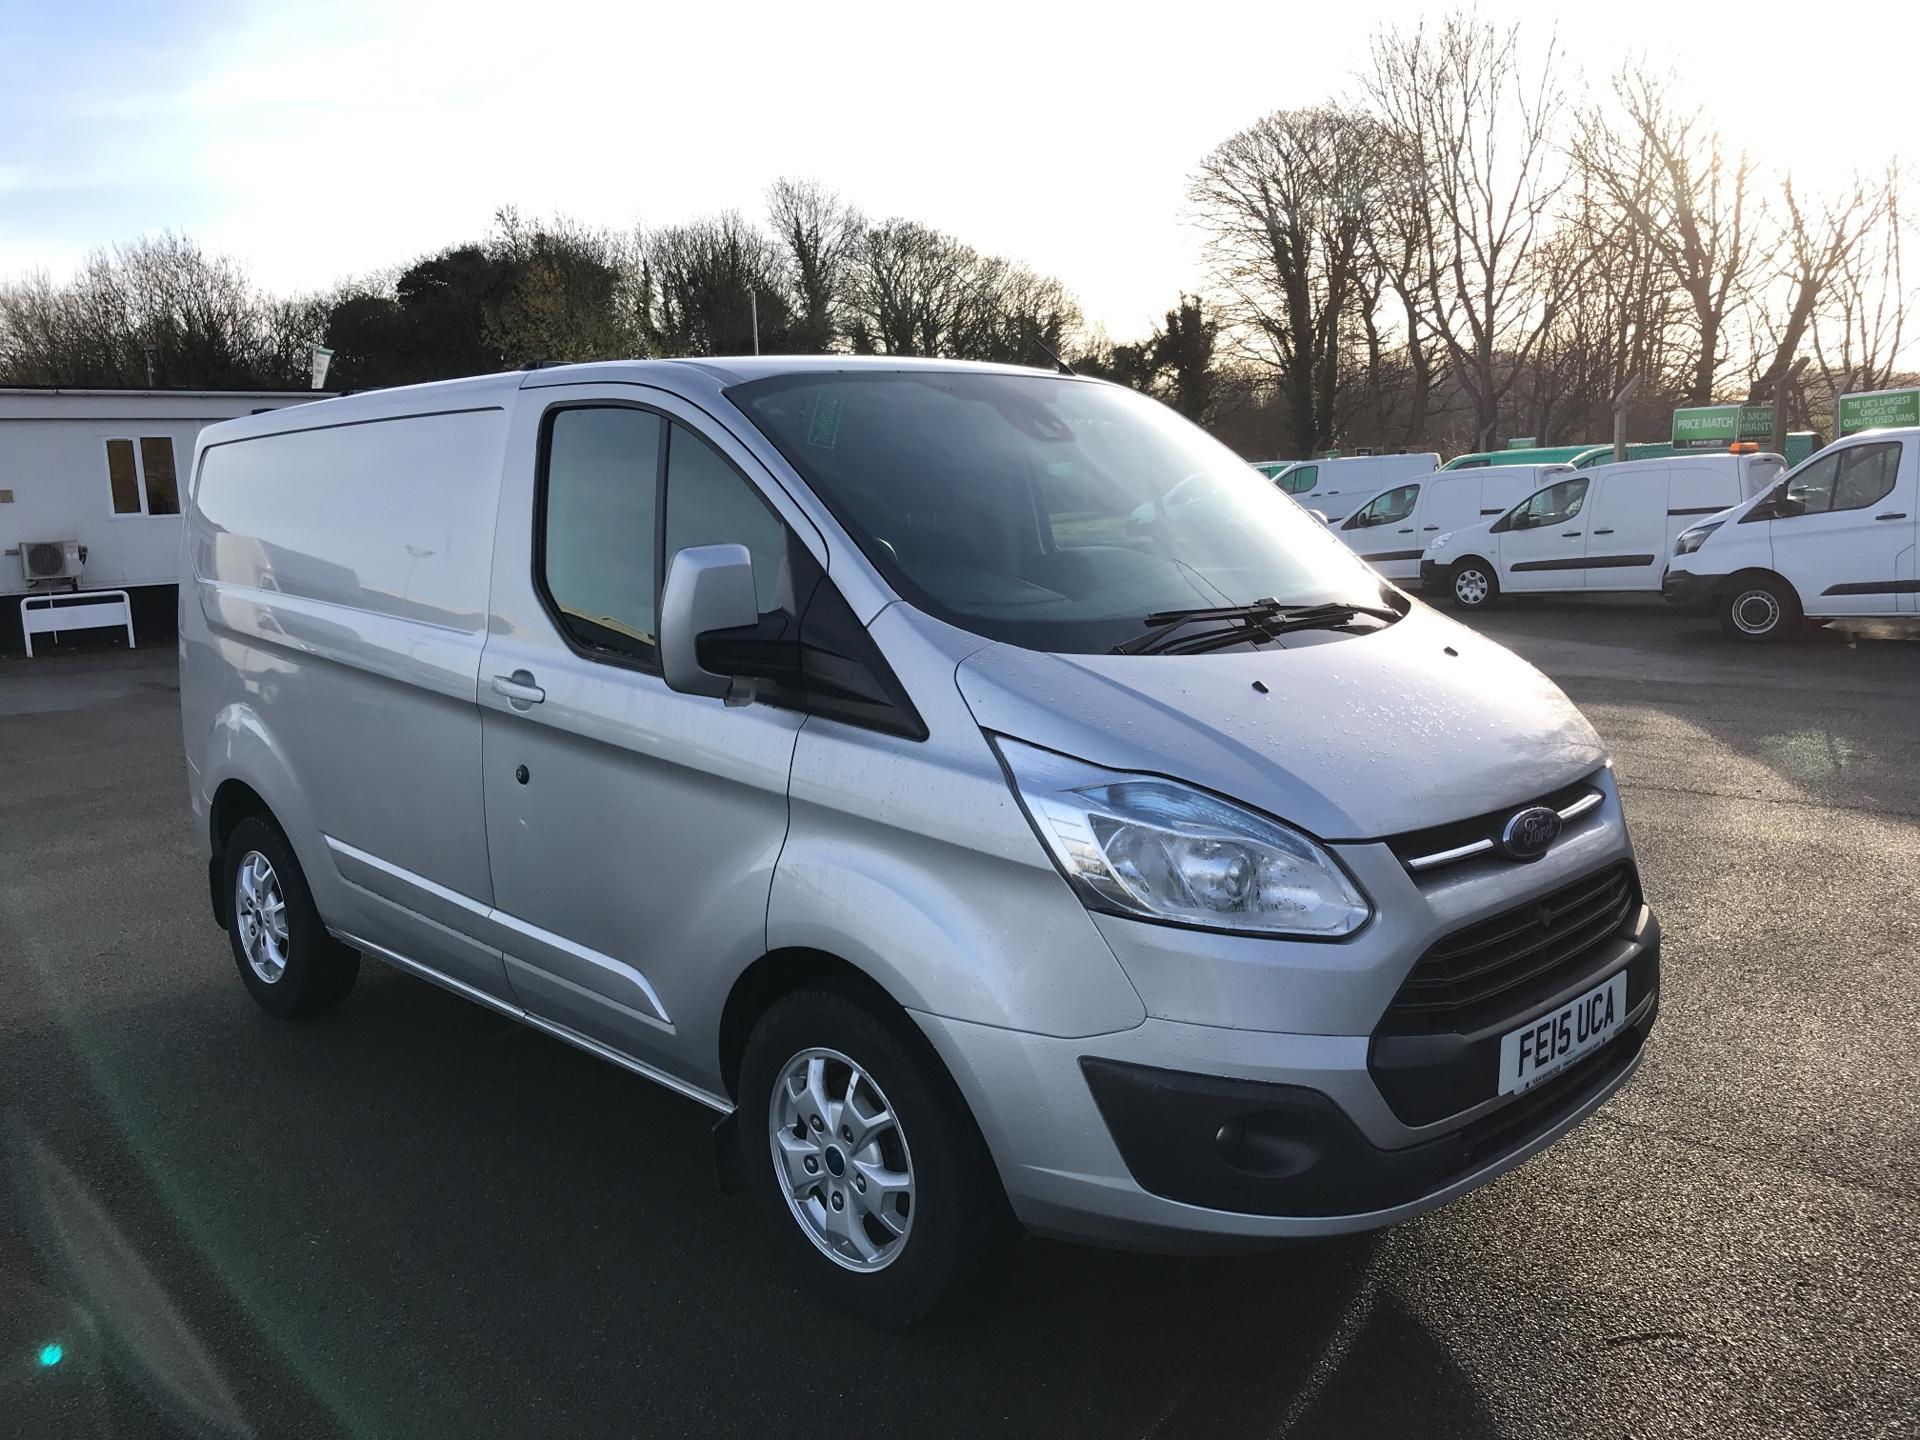 2015 Ford Transit Custom 290 L1 DIESEL FWD 2.2TDCI 125PS LOW ROOF LIMITED VAN EURO 5 *VALUE RANGE VEHICLE - CONDITION REFLECTED IN PRICE* (FE15UCA)